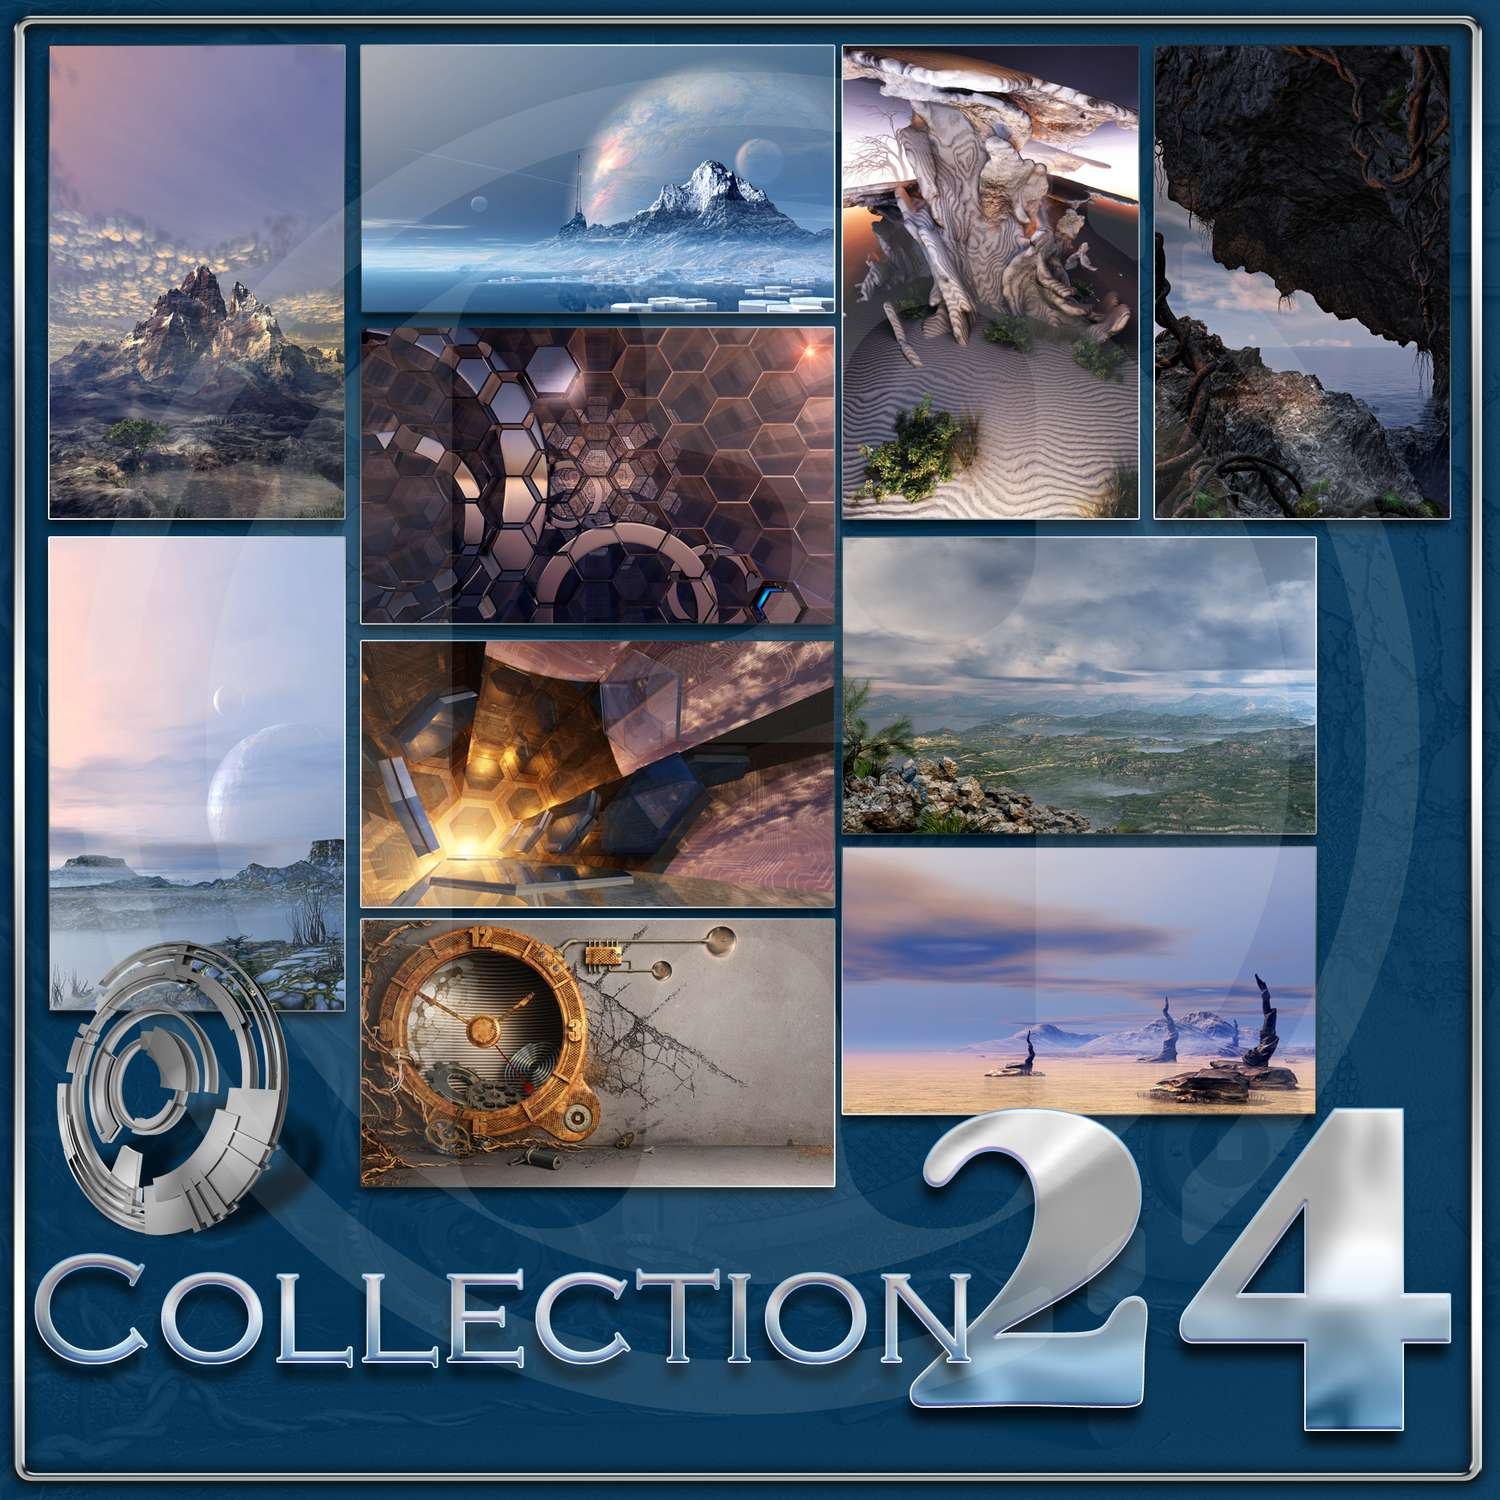 Collection_24